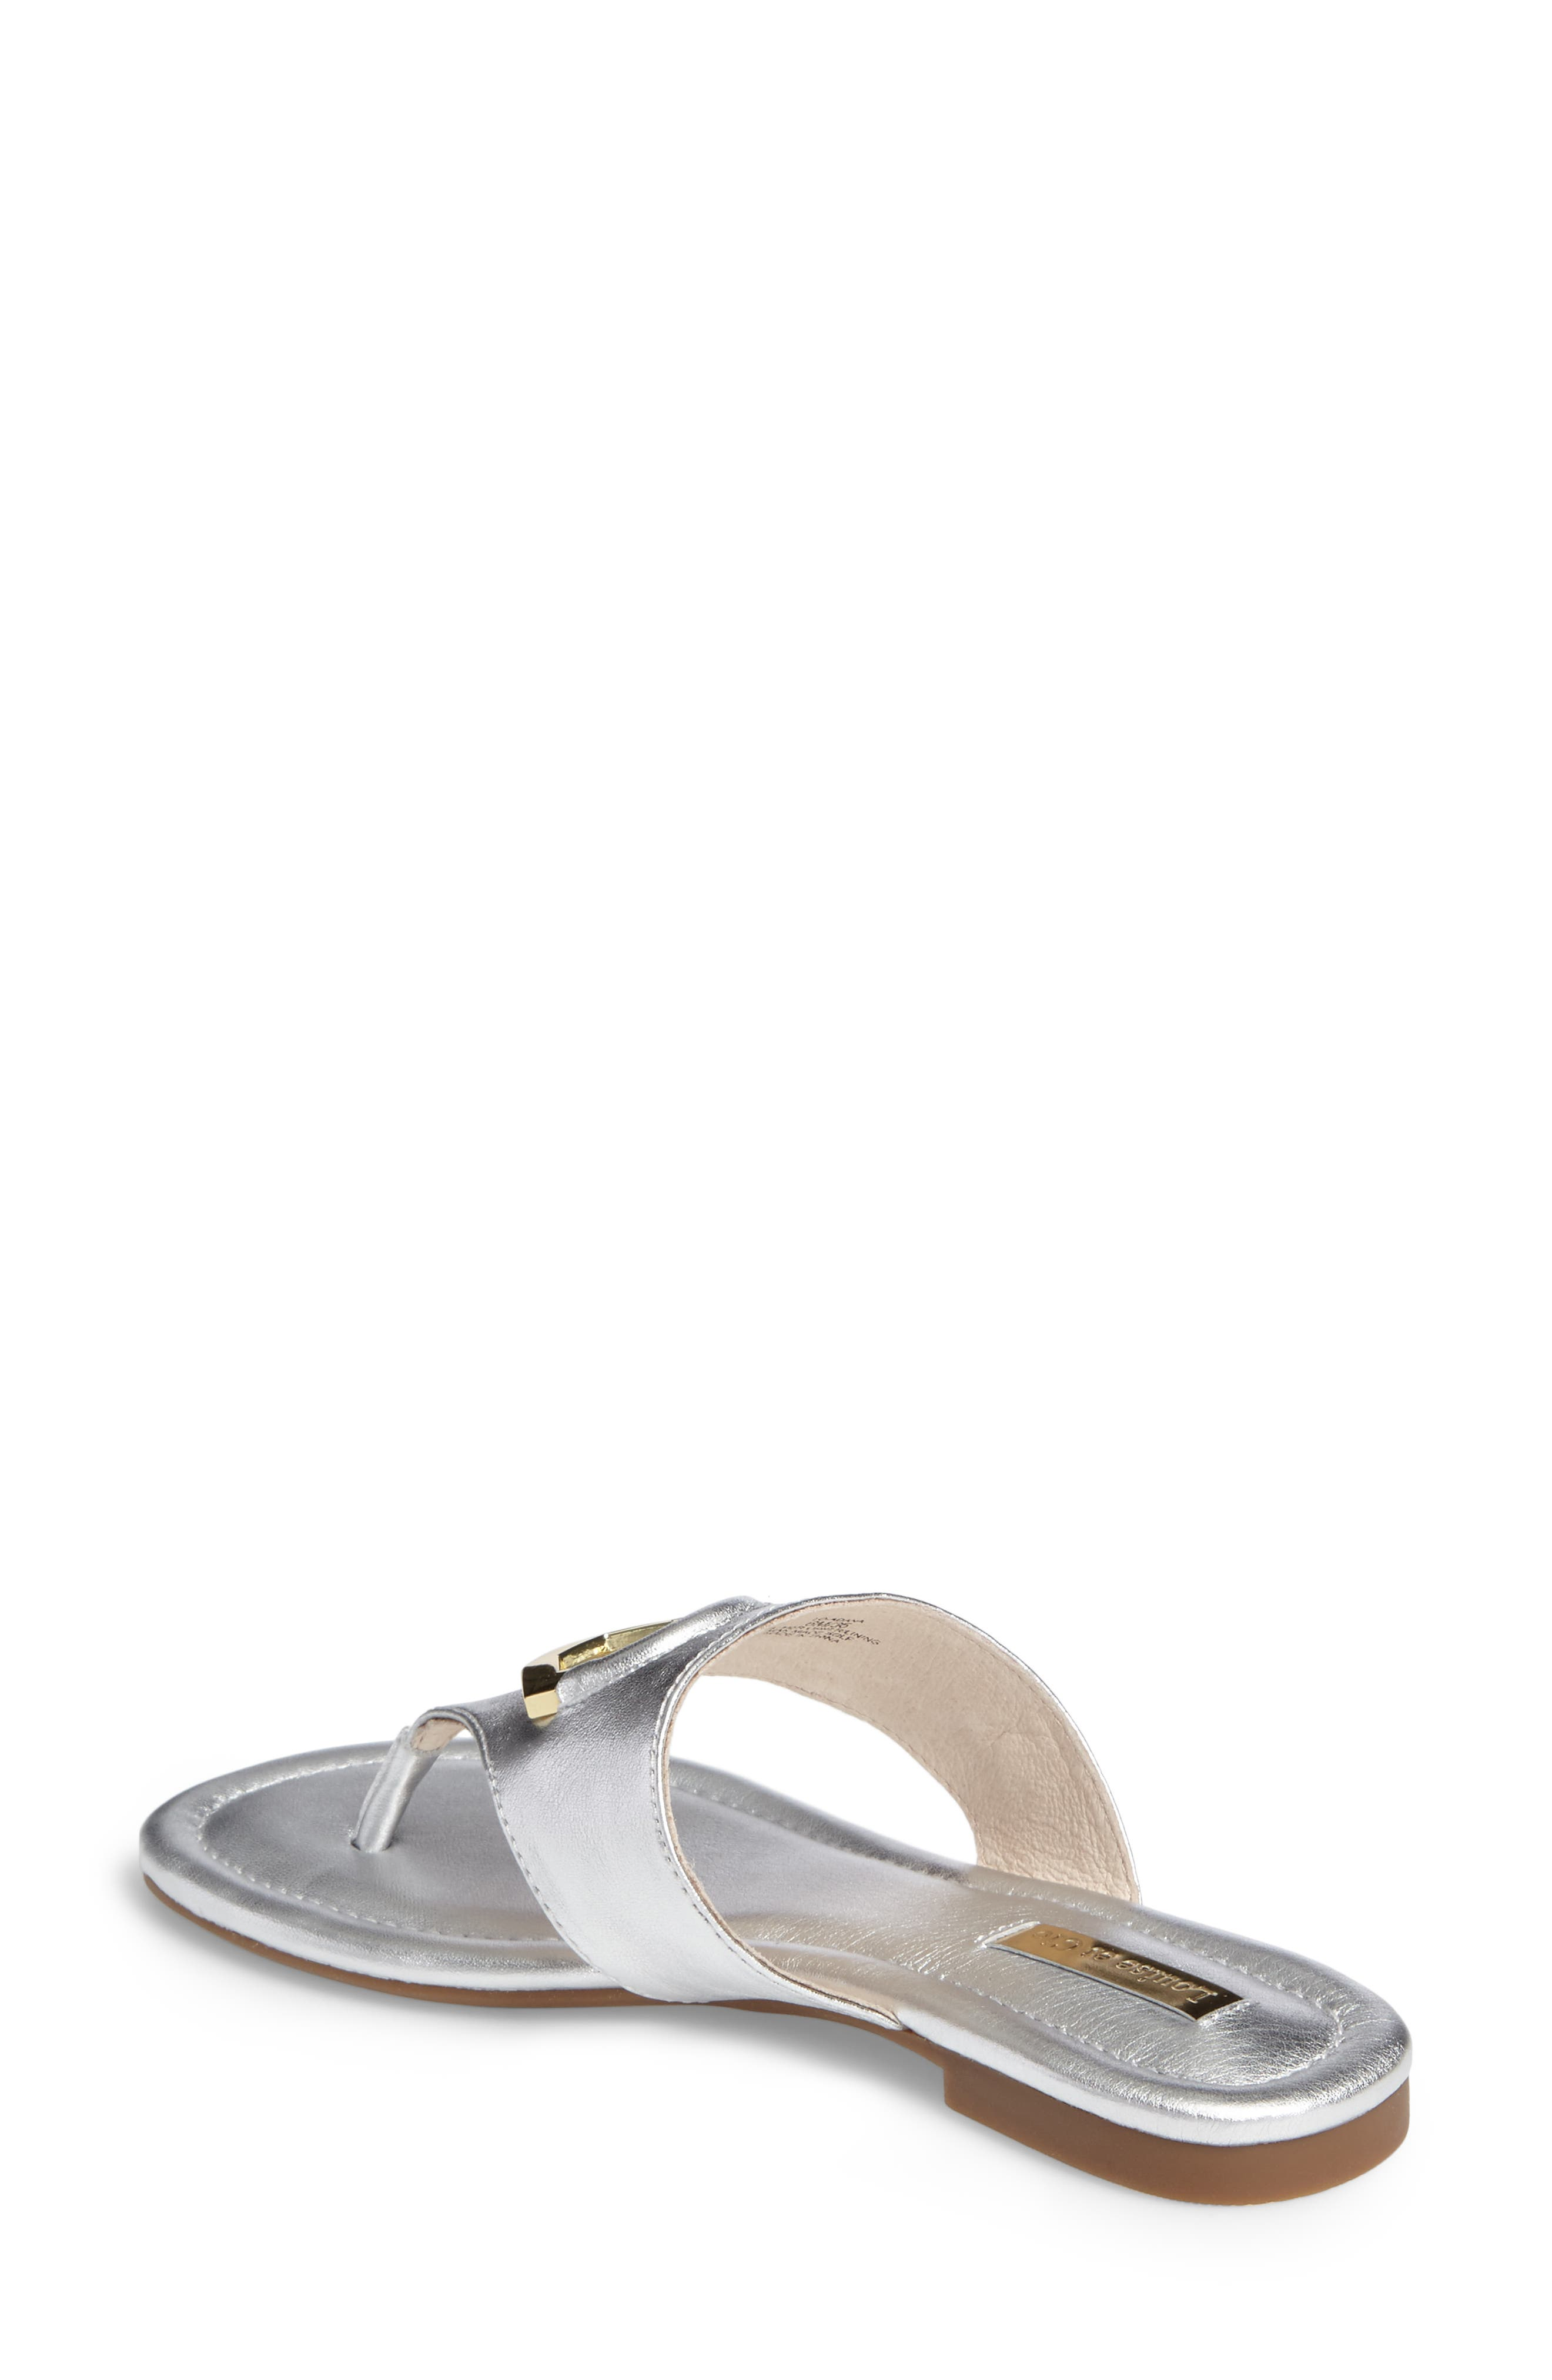 Alternate Image 2  - Louise et Cie Adana Flip Flop (Women)